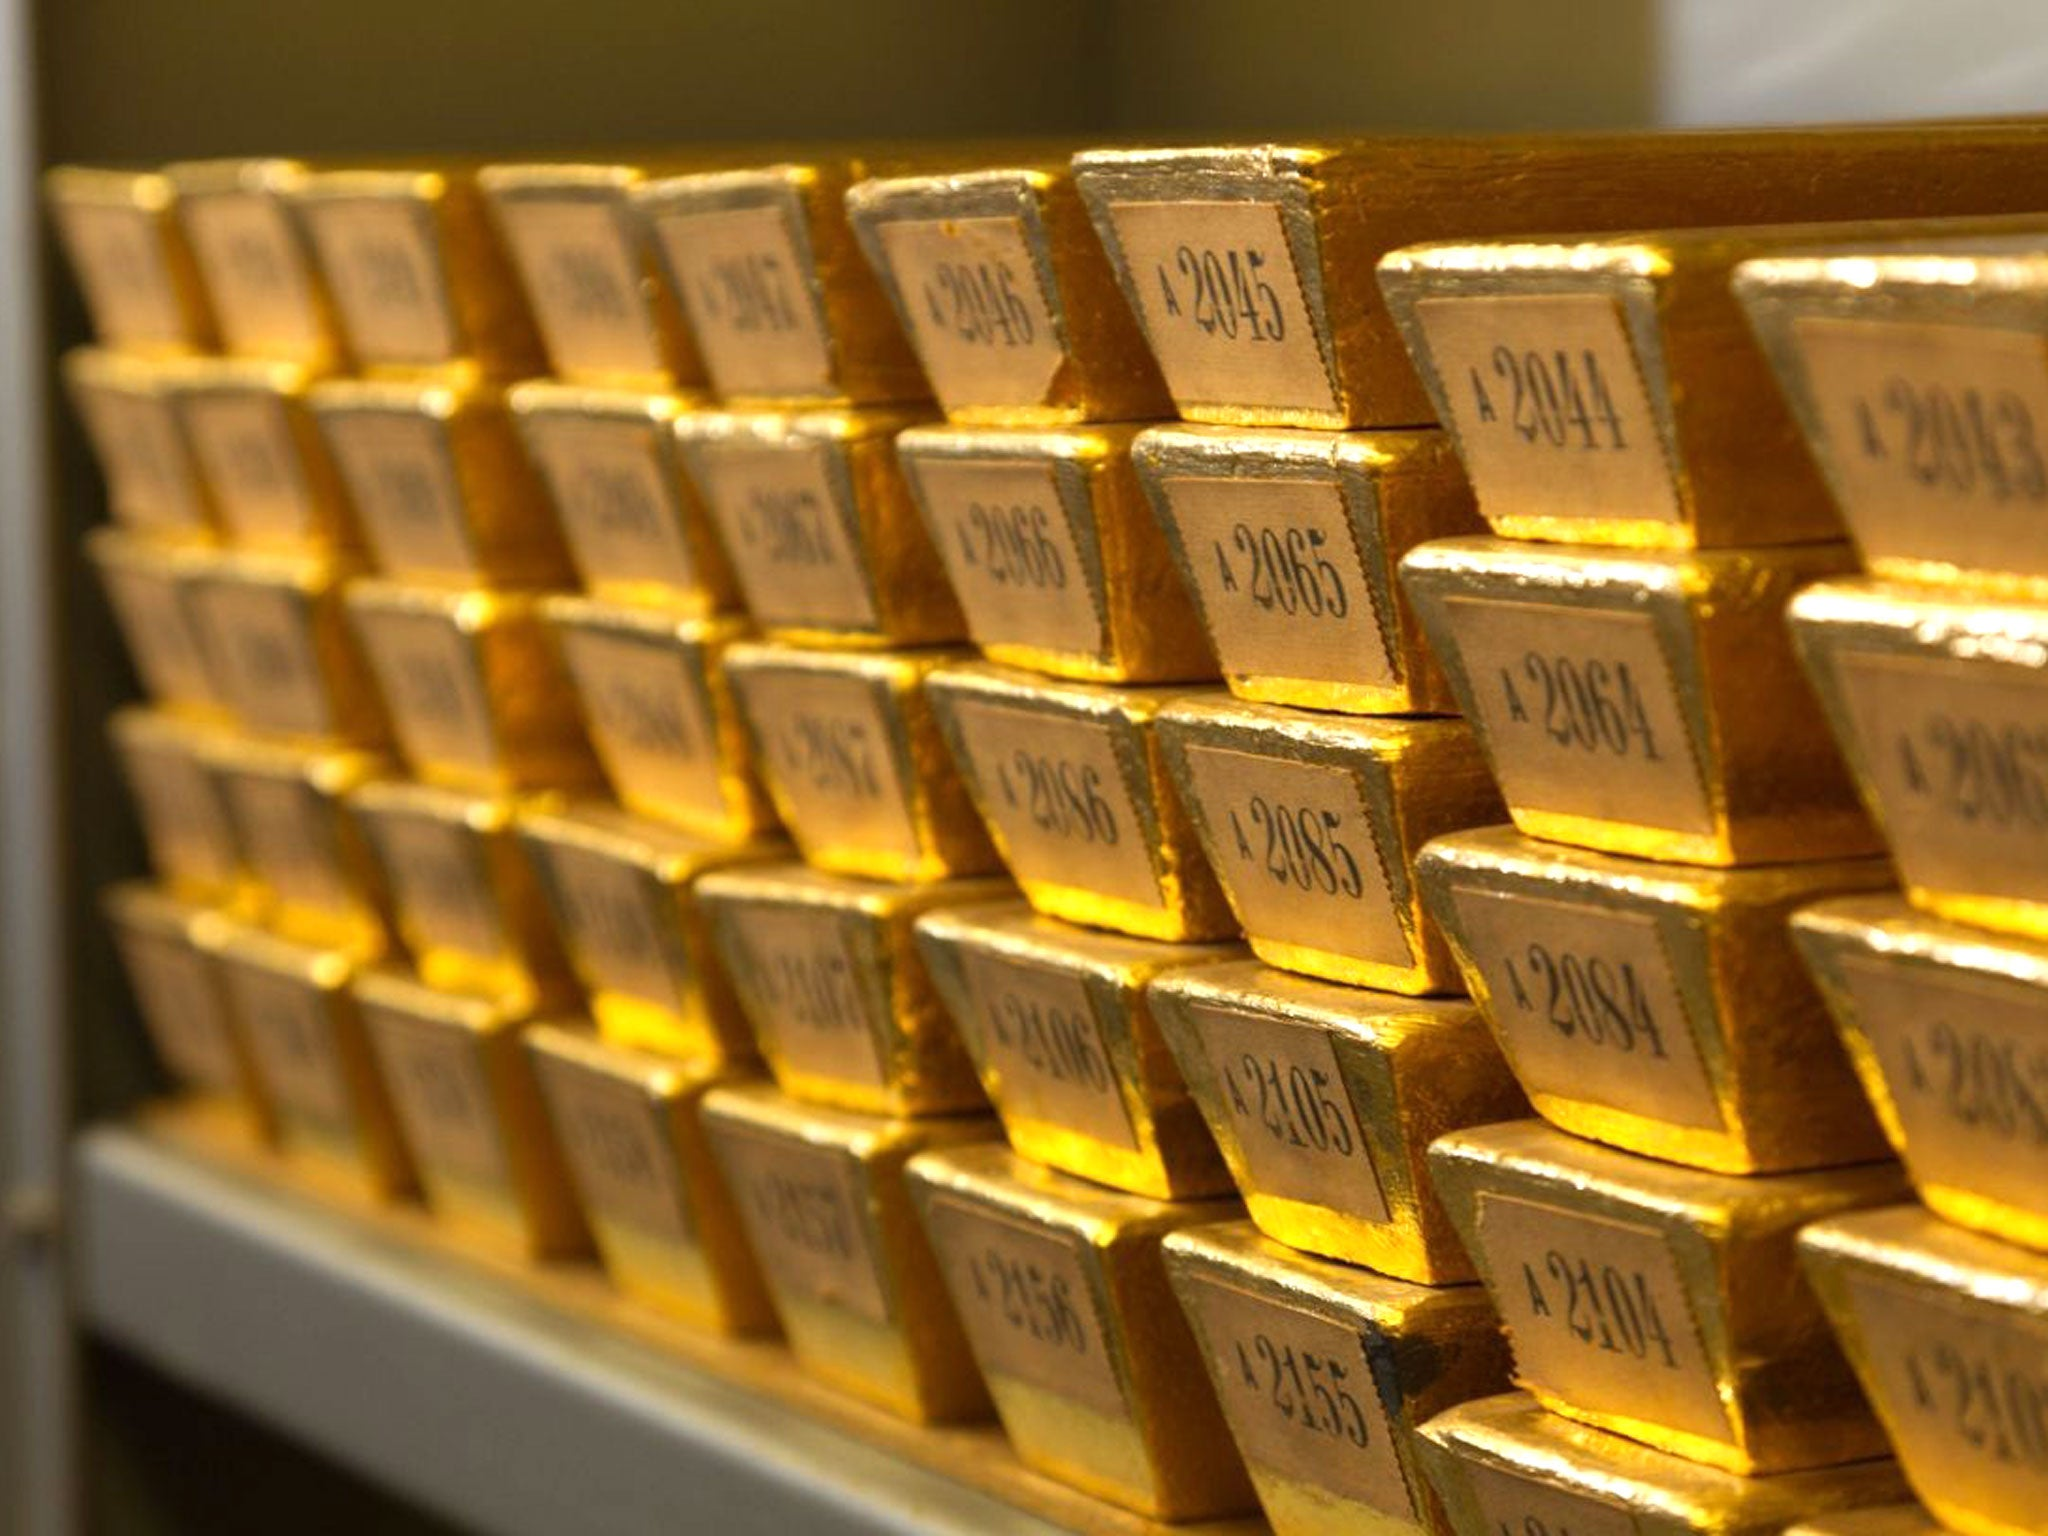 Gold Ended February Lower But Long-term Is On Track To Reach $2,000